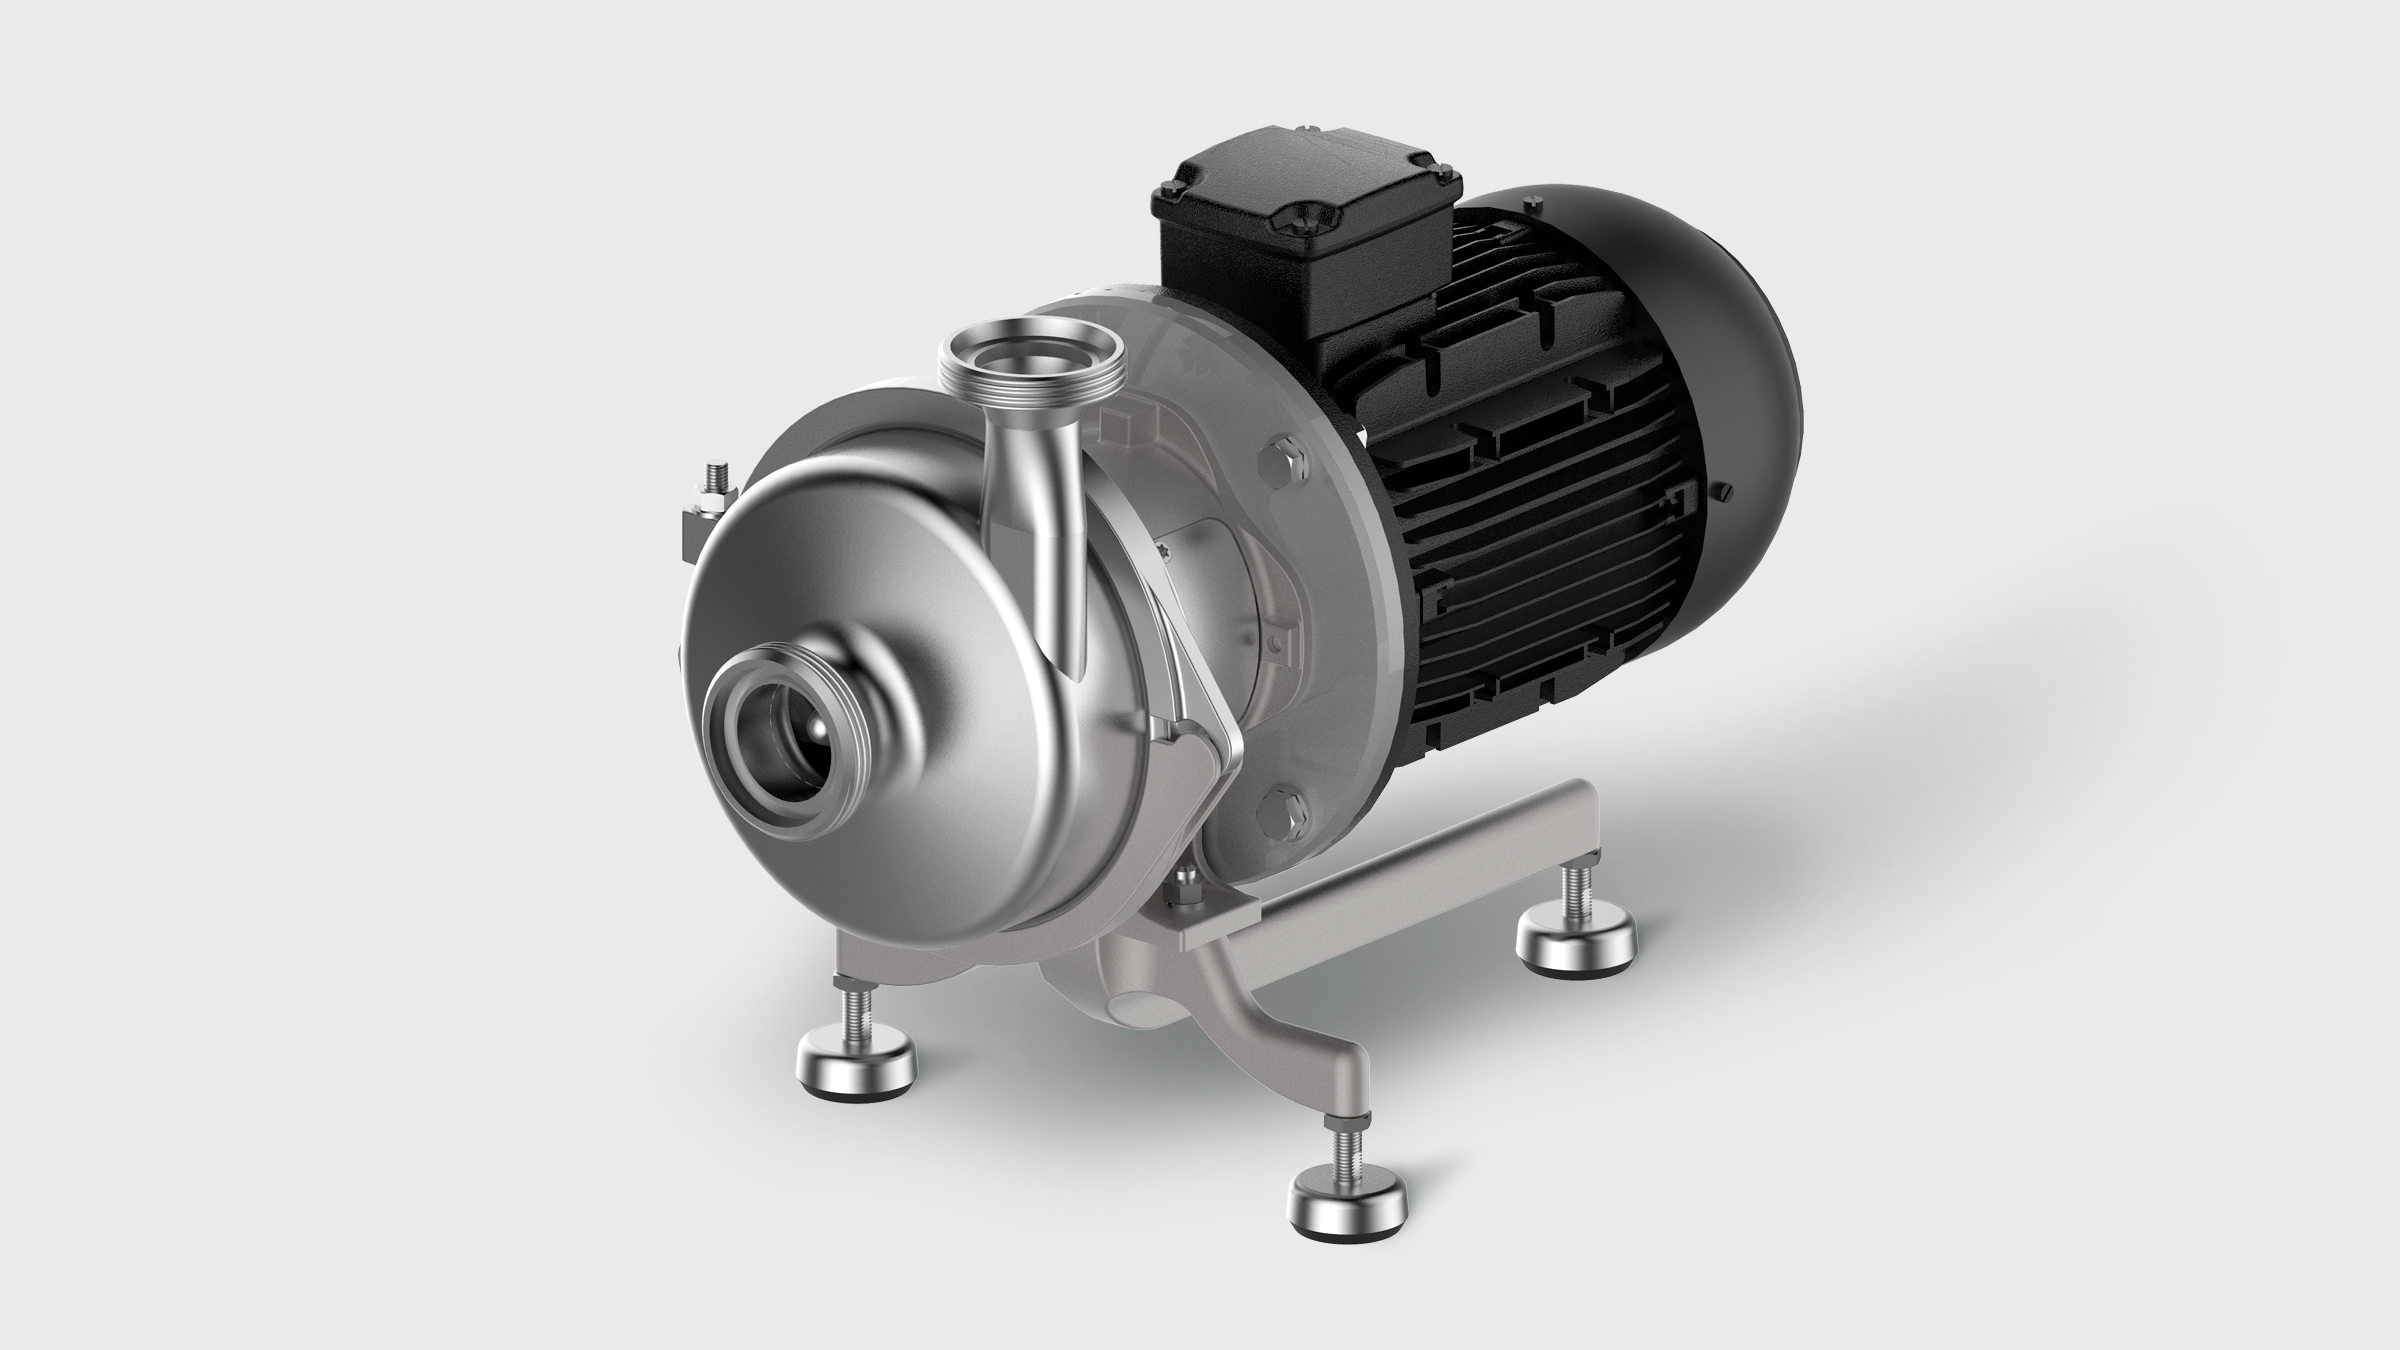 GEA Hilge HYGIA | Centrifual pumps for advanced applications